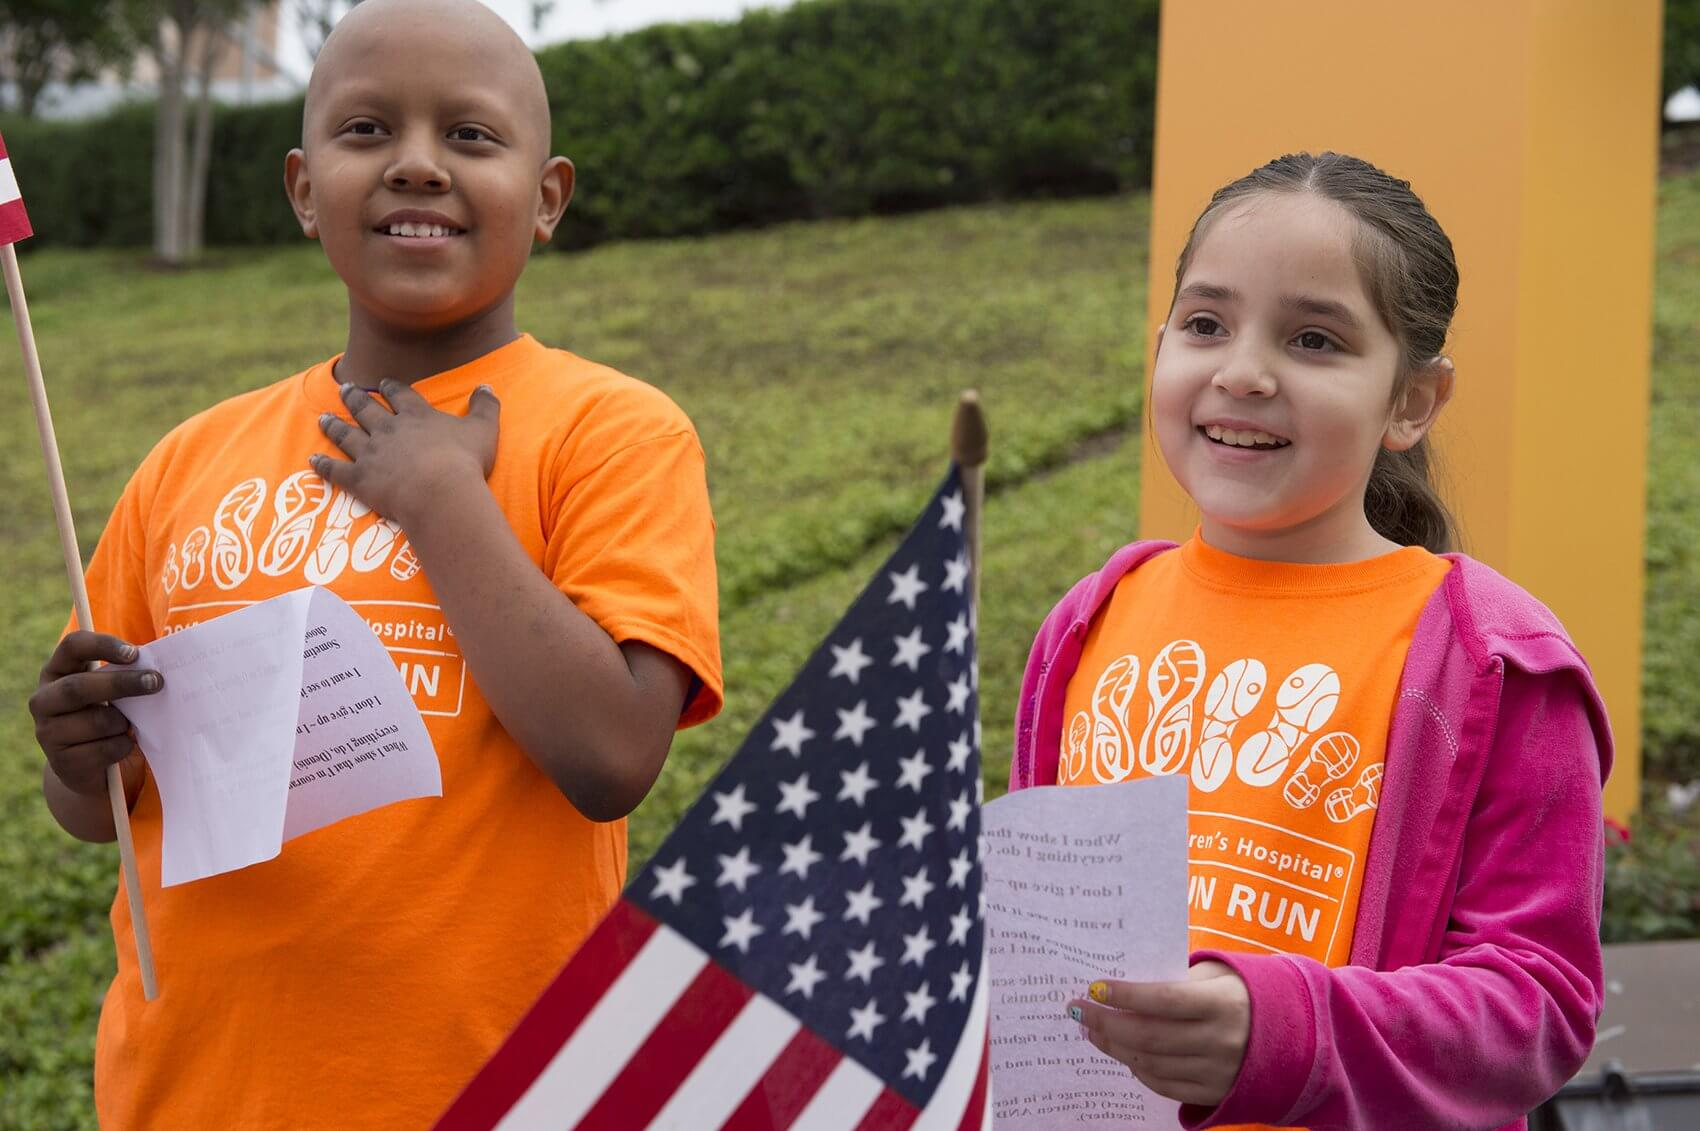 Dennis and Lauren, patients who are being treated at Texas Children's Hospital Cancer and Hematology Centers, read a poem about courage before the race began (Credit: Paul Vincent Kuntz/Texas Children's Hospital)